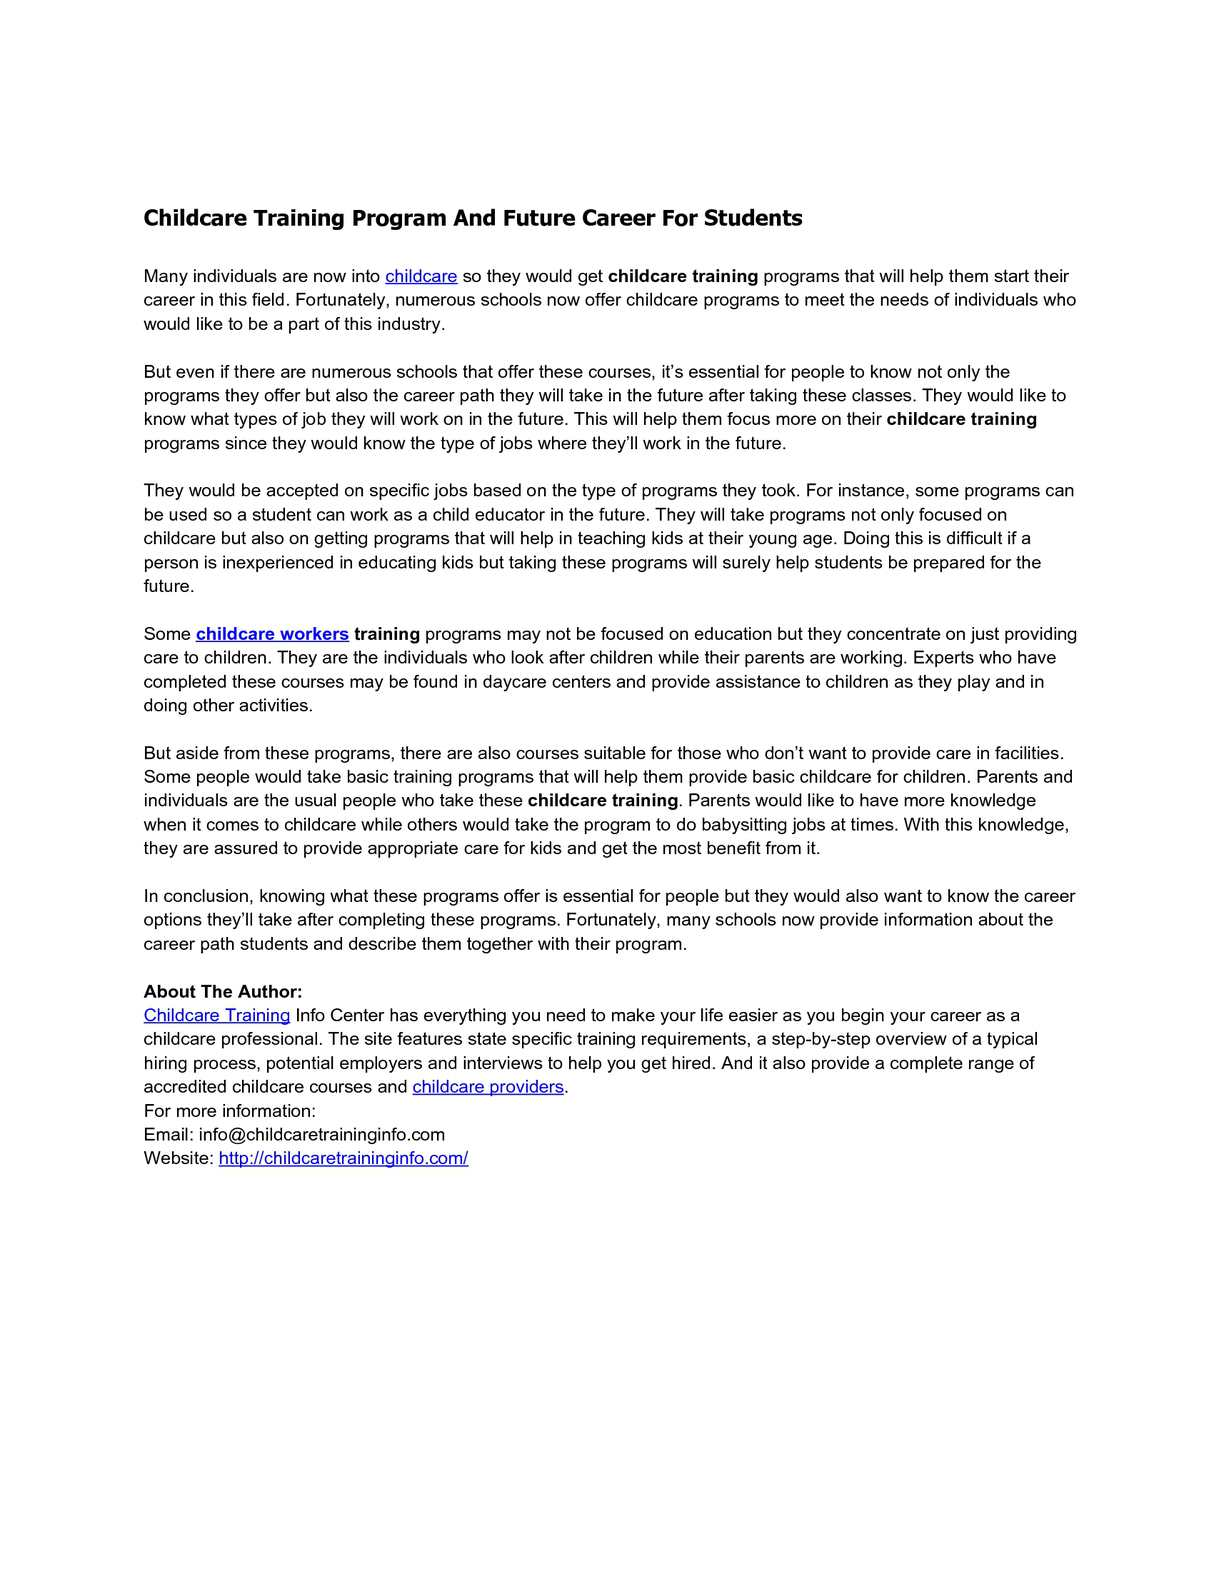 Calamo Childcare Training Program And Future Career For Students